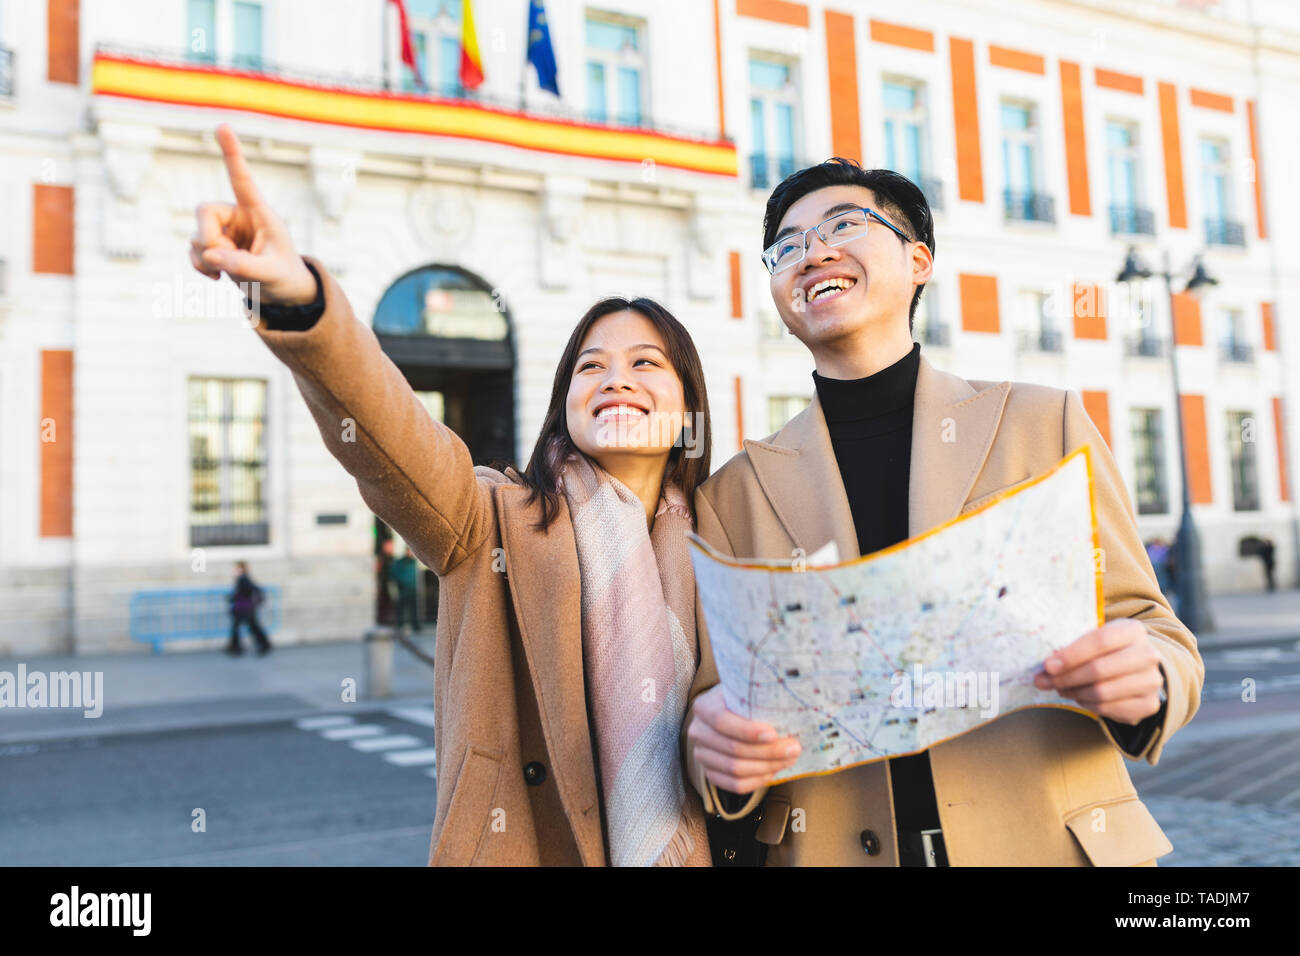 Spain, Madrid, happy young couple with map exploring the city - Stock Image